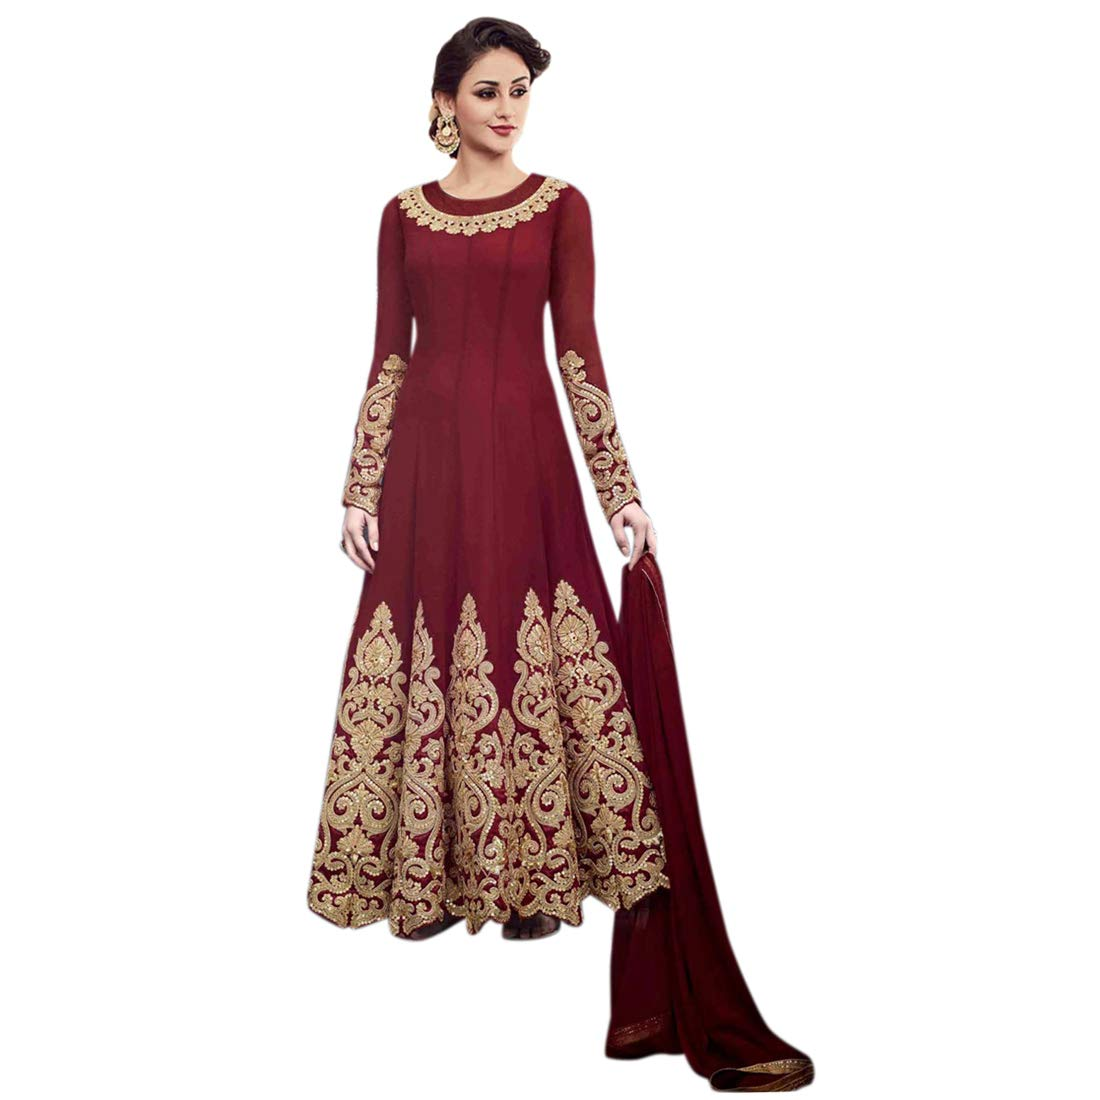 94674238372309 MONIKA SILK MILL Women's Georgette Embroidery Semi-Stitched Anarkali Suit  with Dupatta (Red, Free Size): Amazon.in: Clothing & Accessories